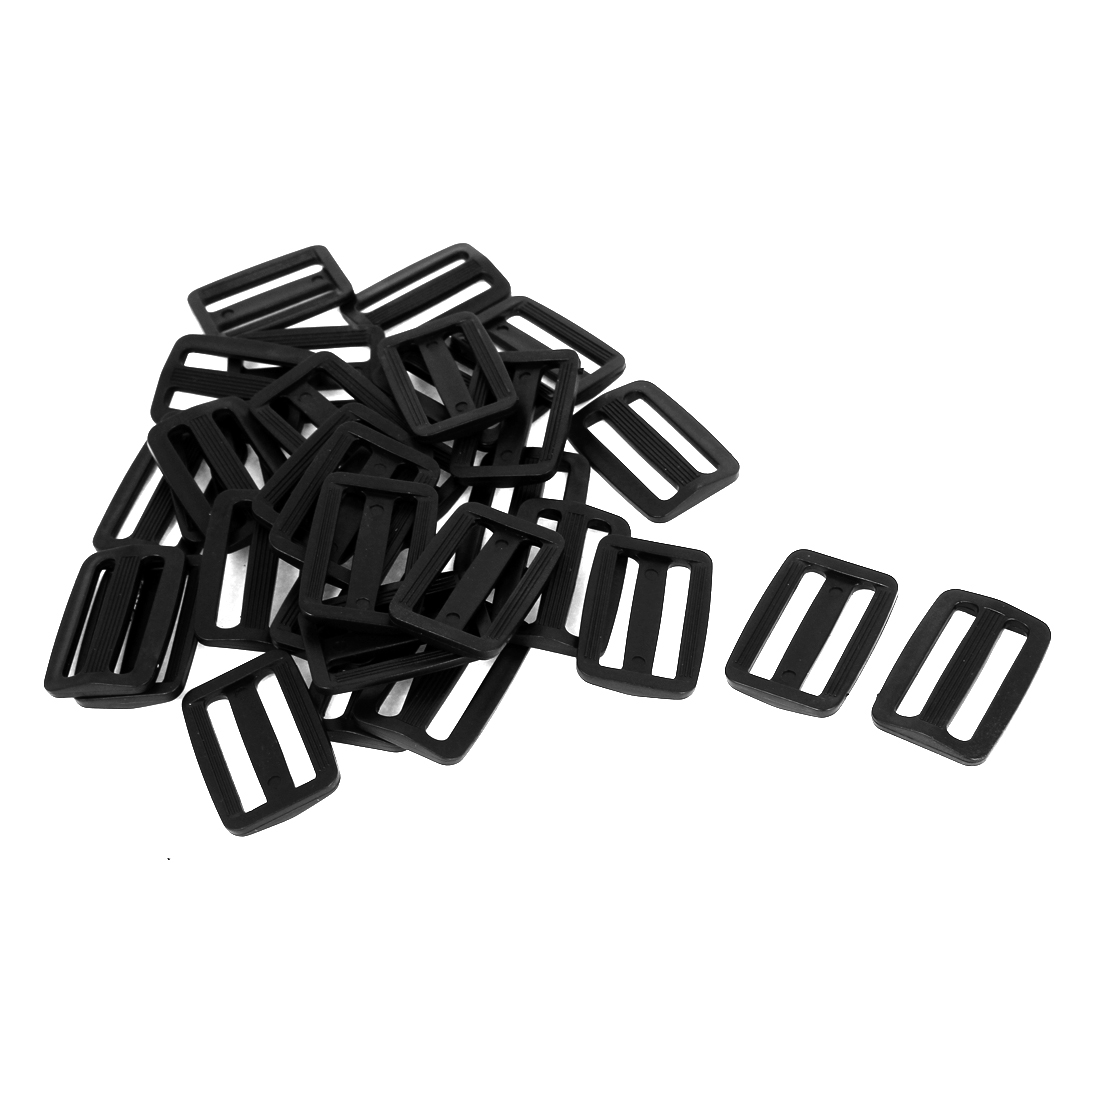 50 Pcs Black Hard Plastic Slide Rectangle Buckle Luggage Bag Replacement 3.2CM